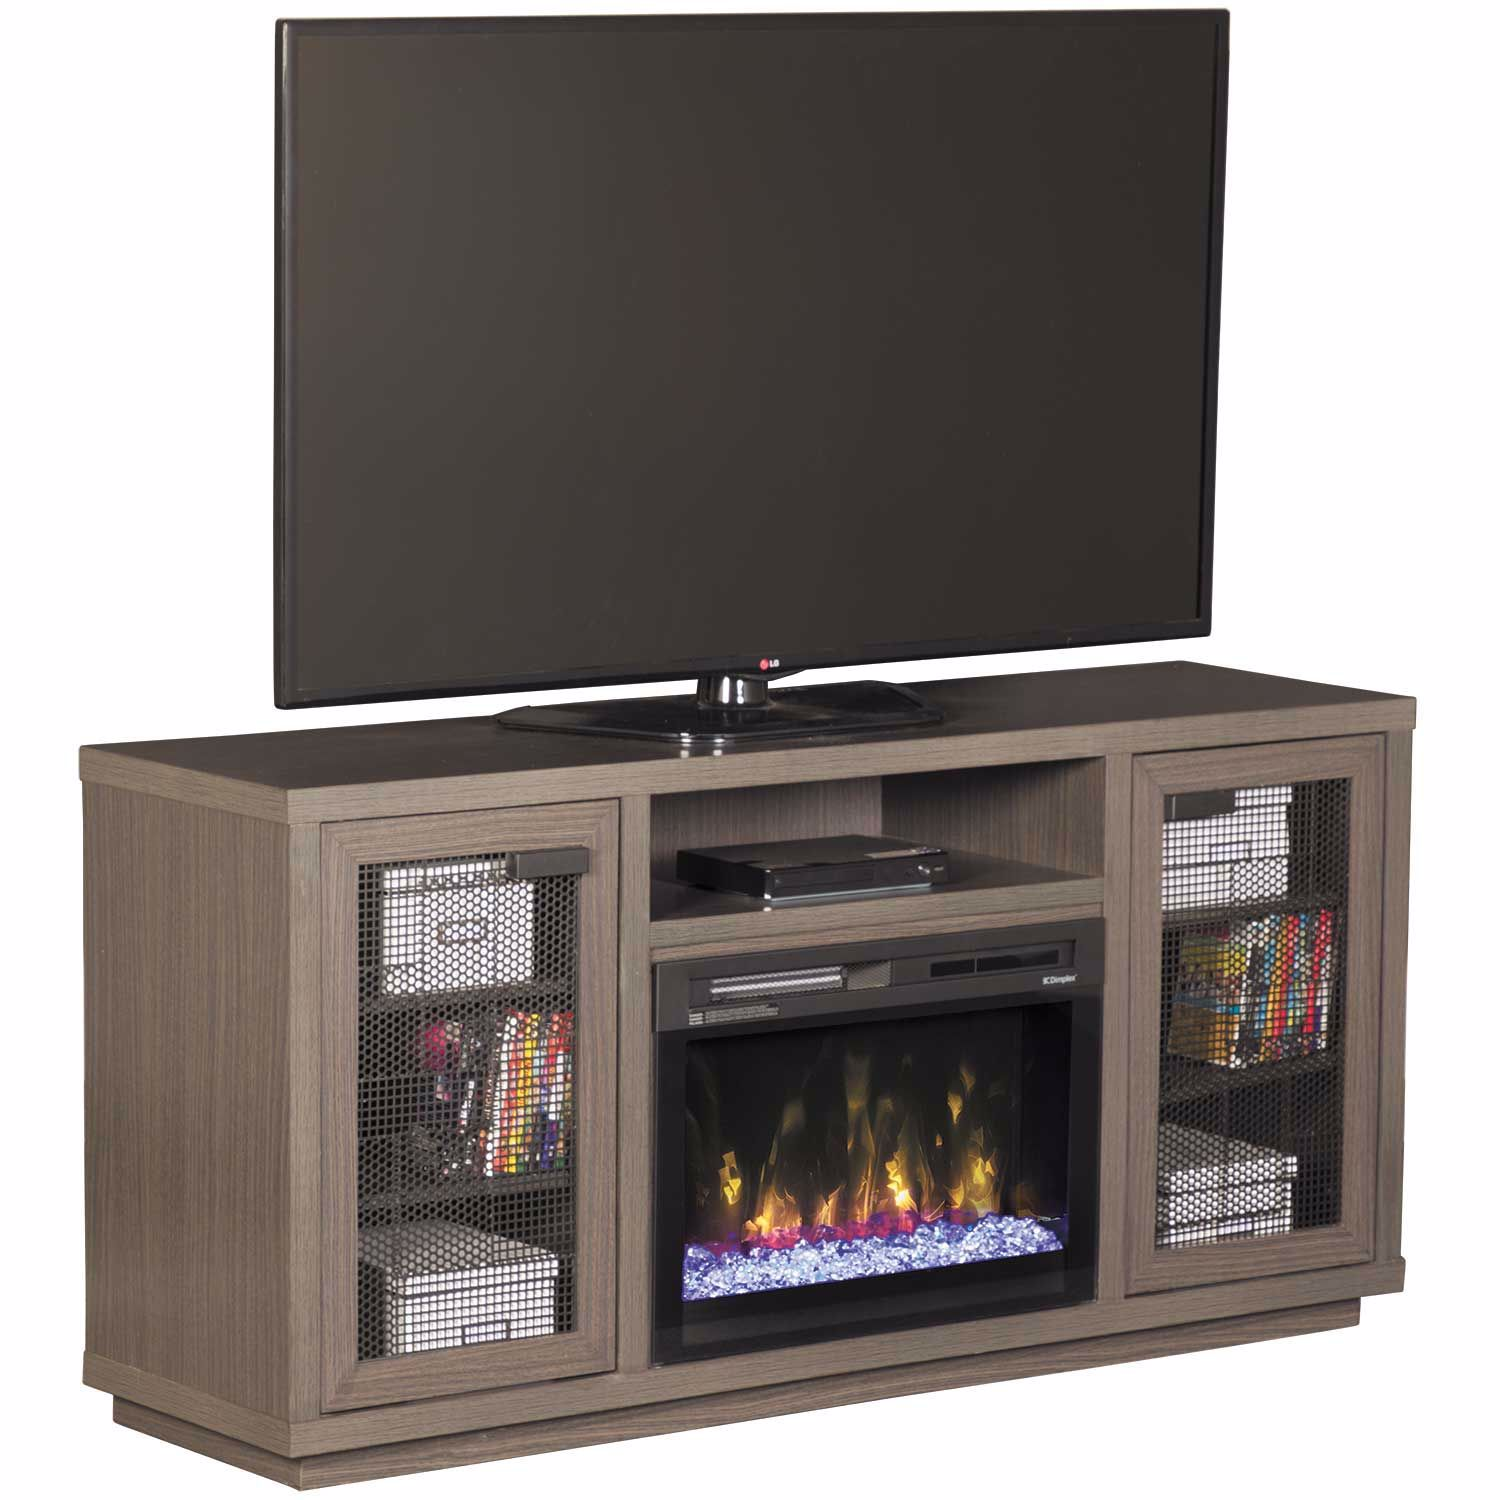 Picture of Swayze Fireplace Console